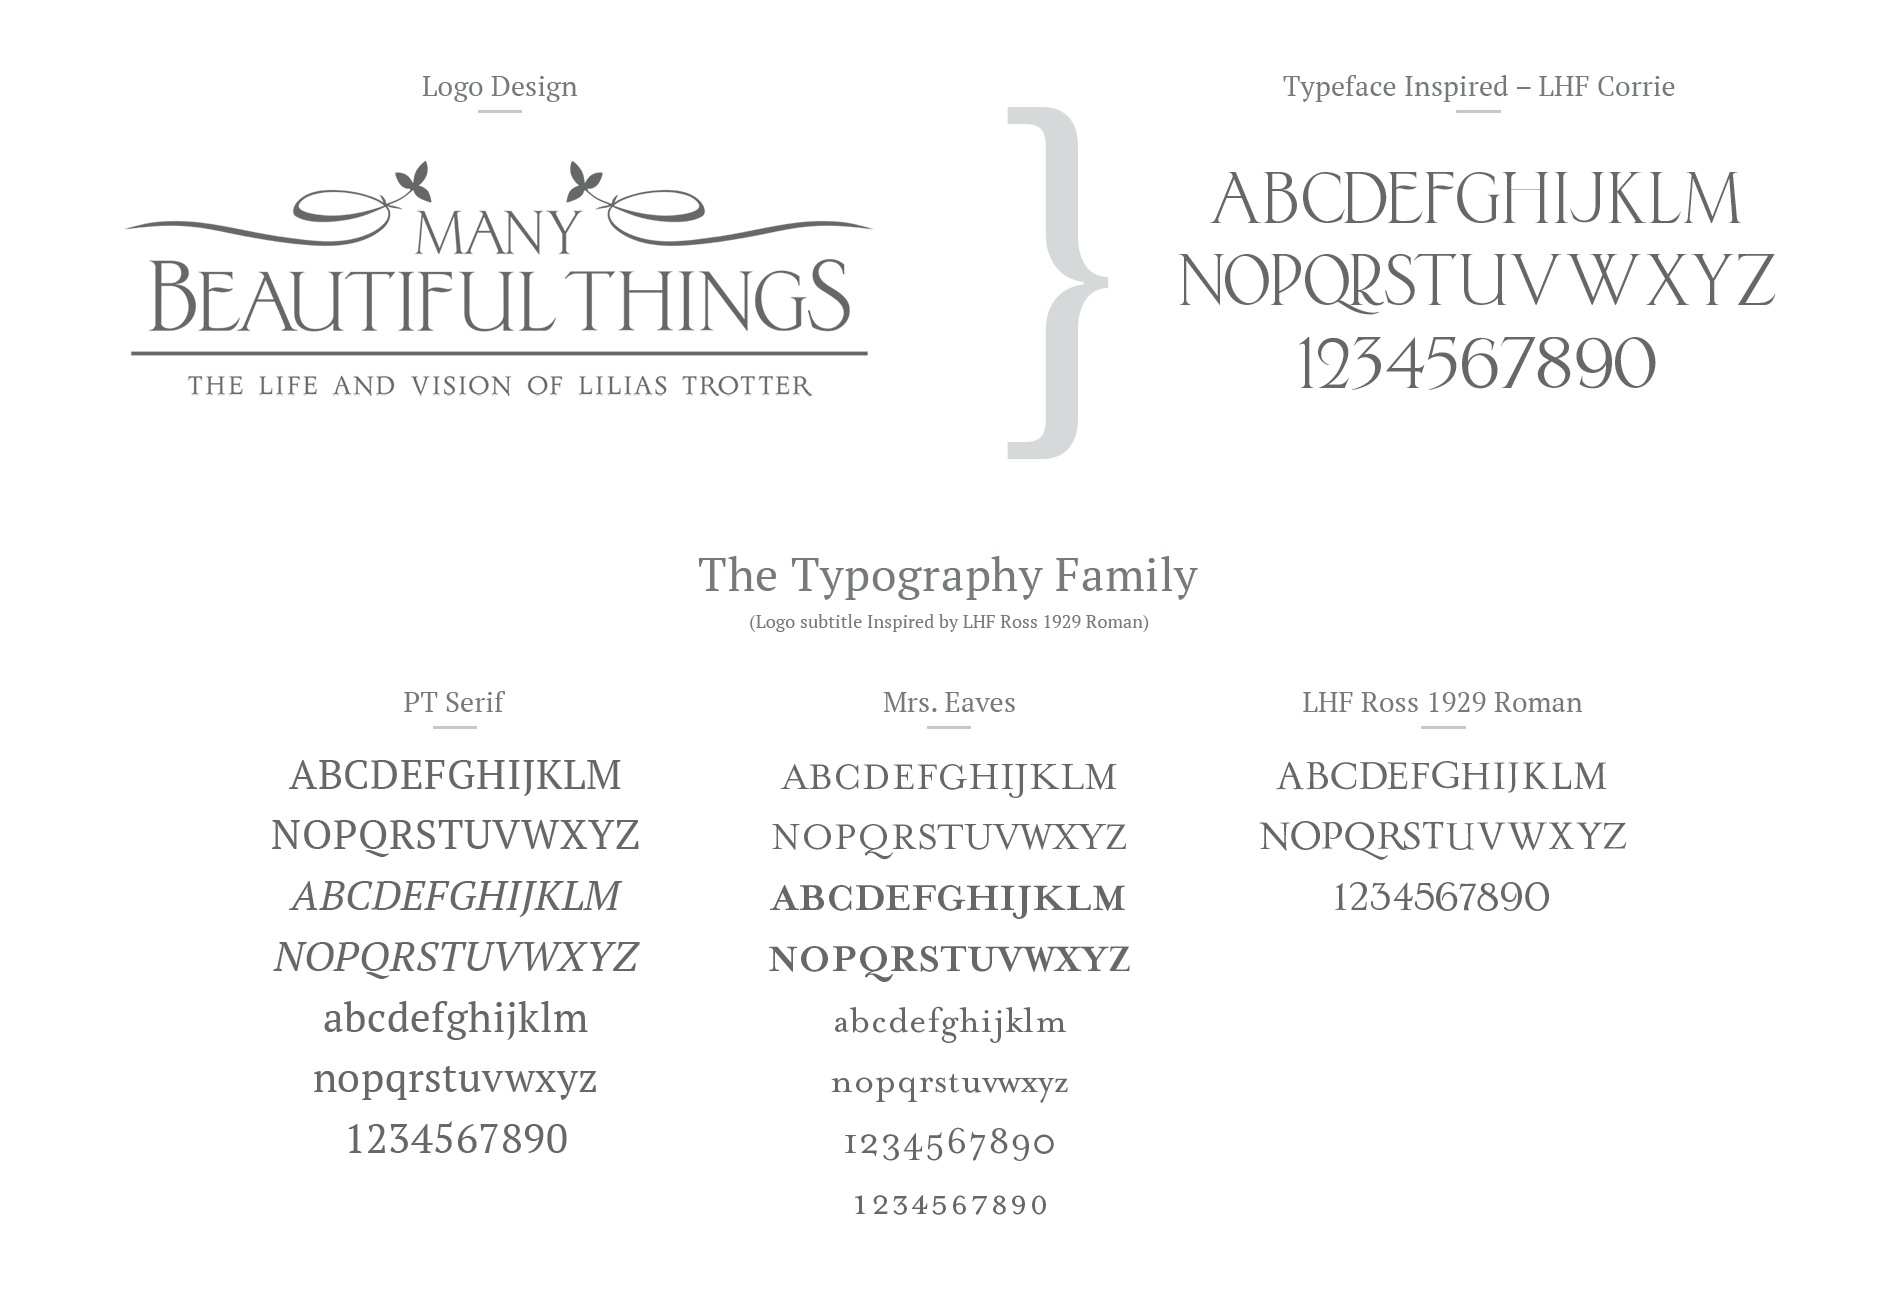 ManyBeautiful Things type spread.png